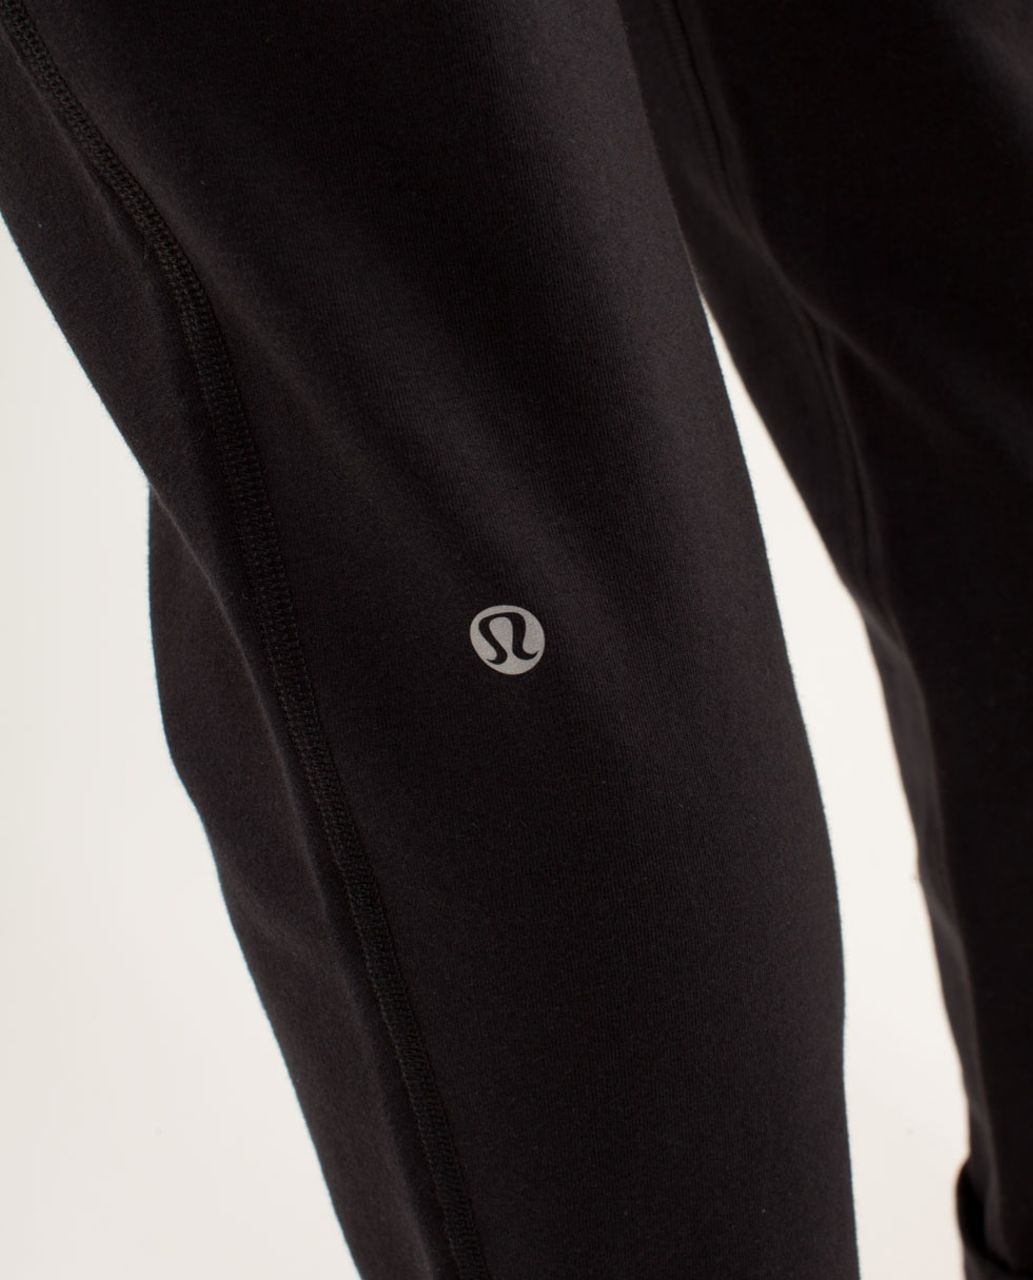 Lululemon Rejuvenate Sweat Pant - Black